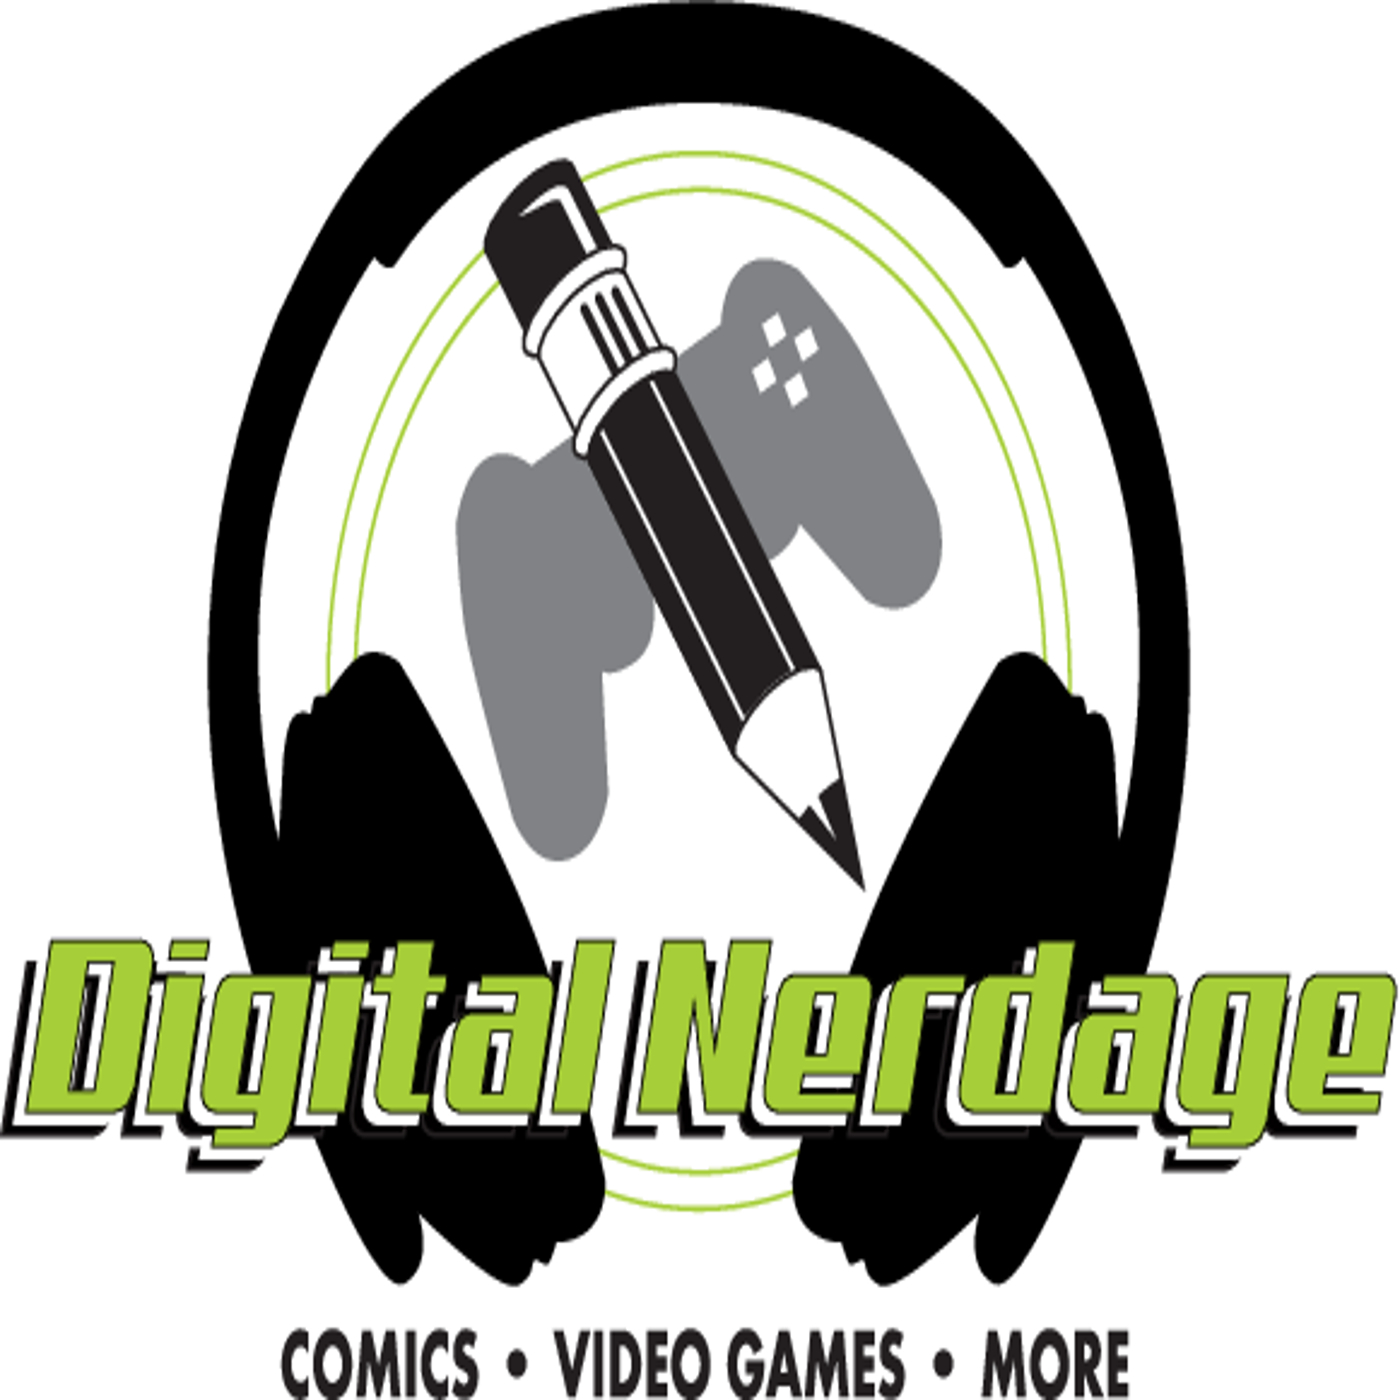 Digital Nerdage Podcast